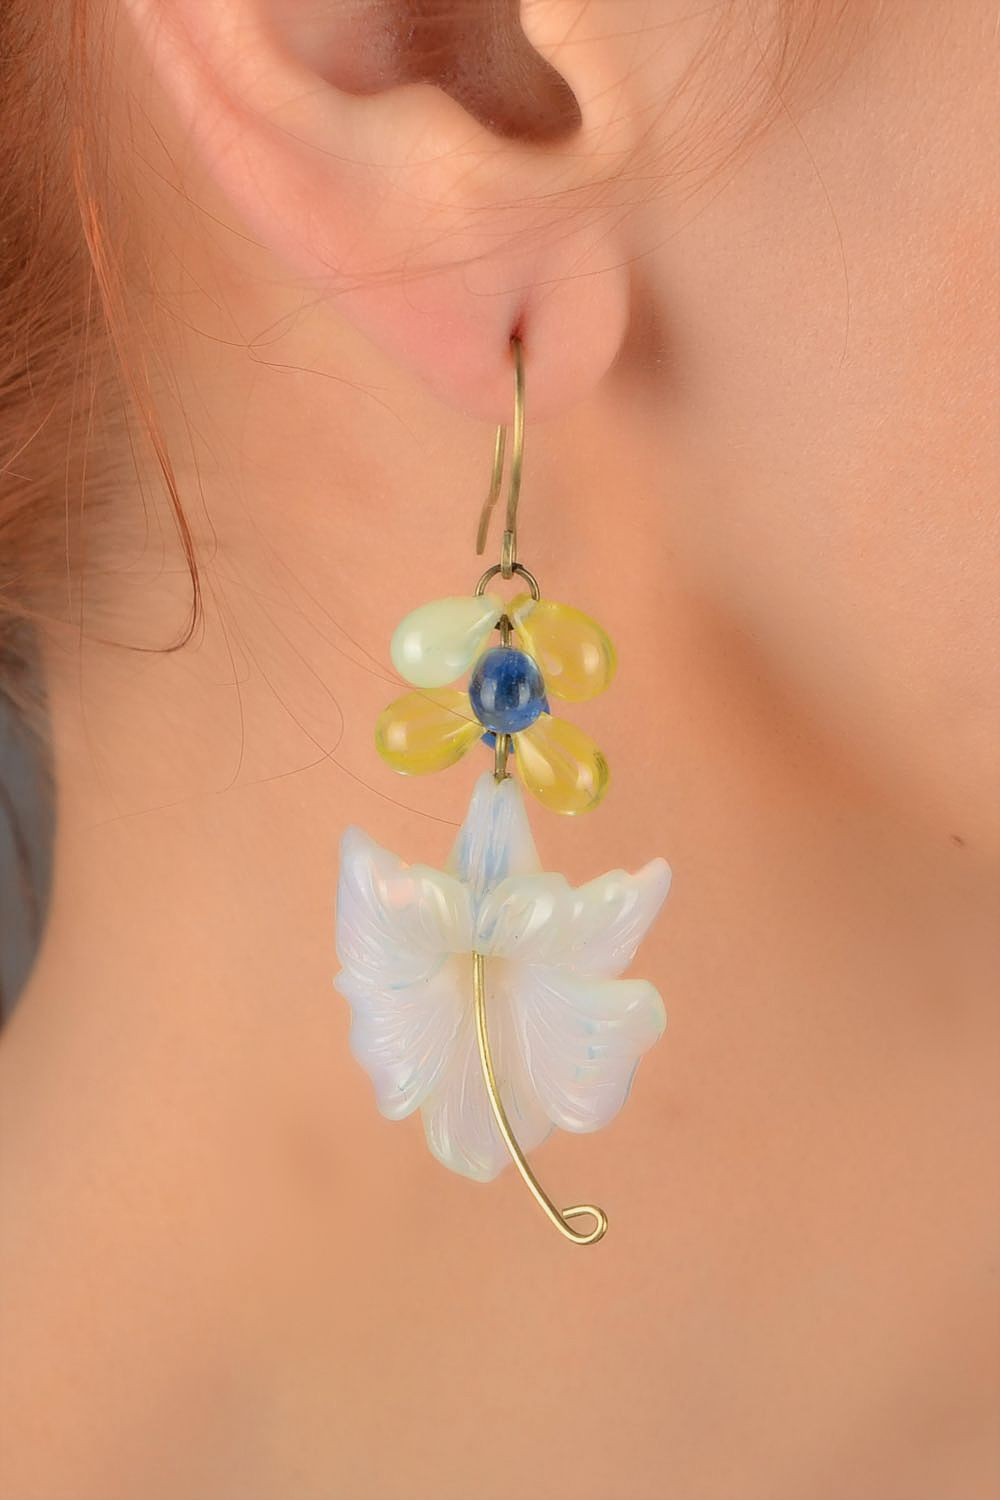 Handmade designer dangling earrings with tender Czech glass flowers photo 5